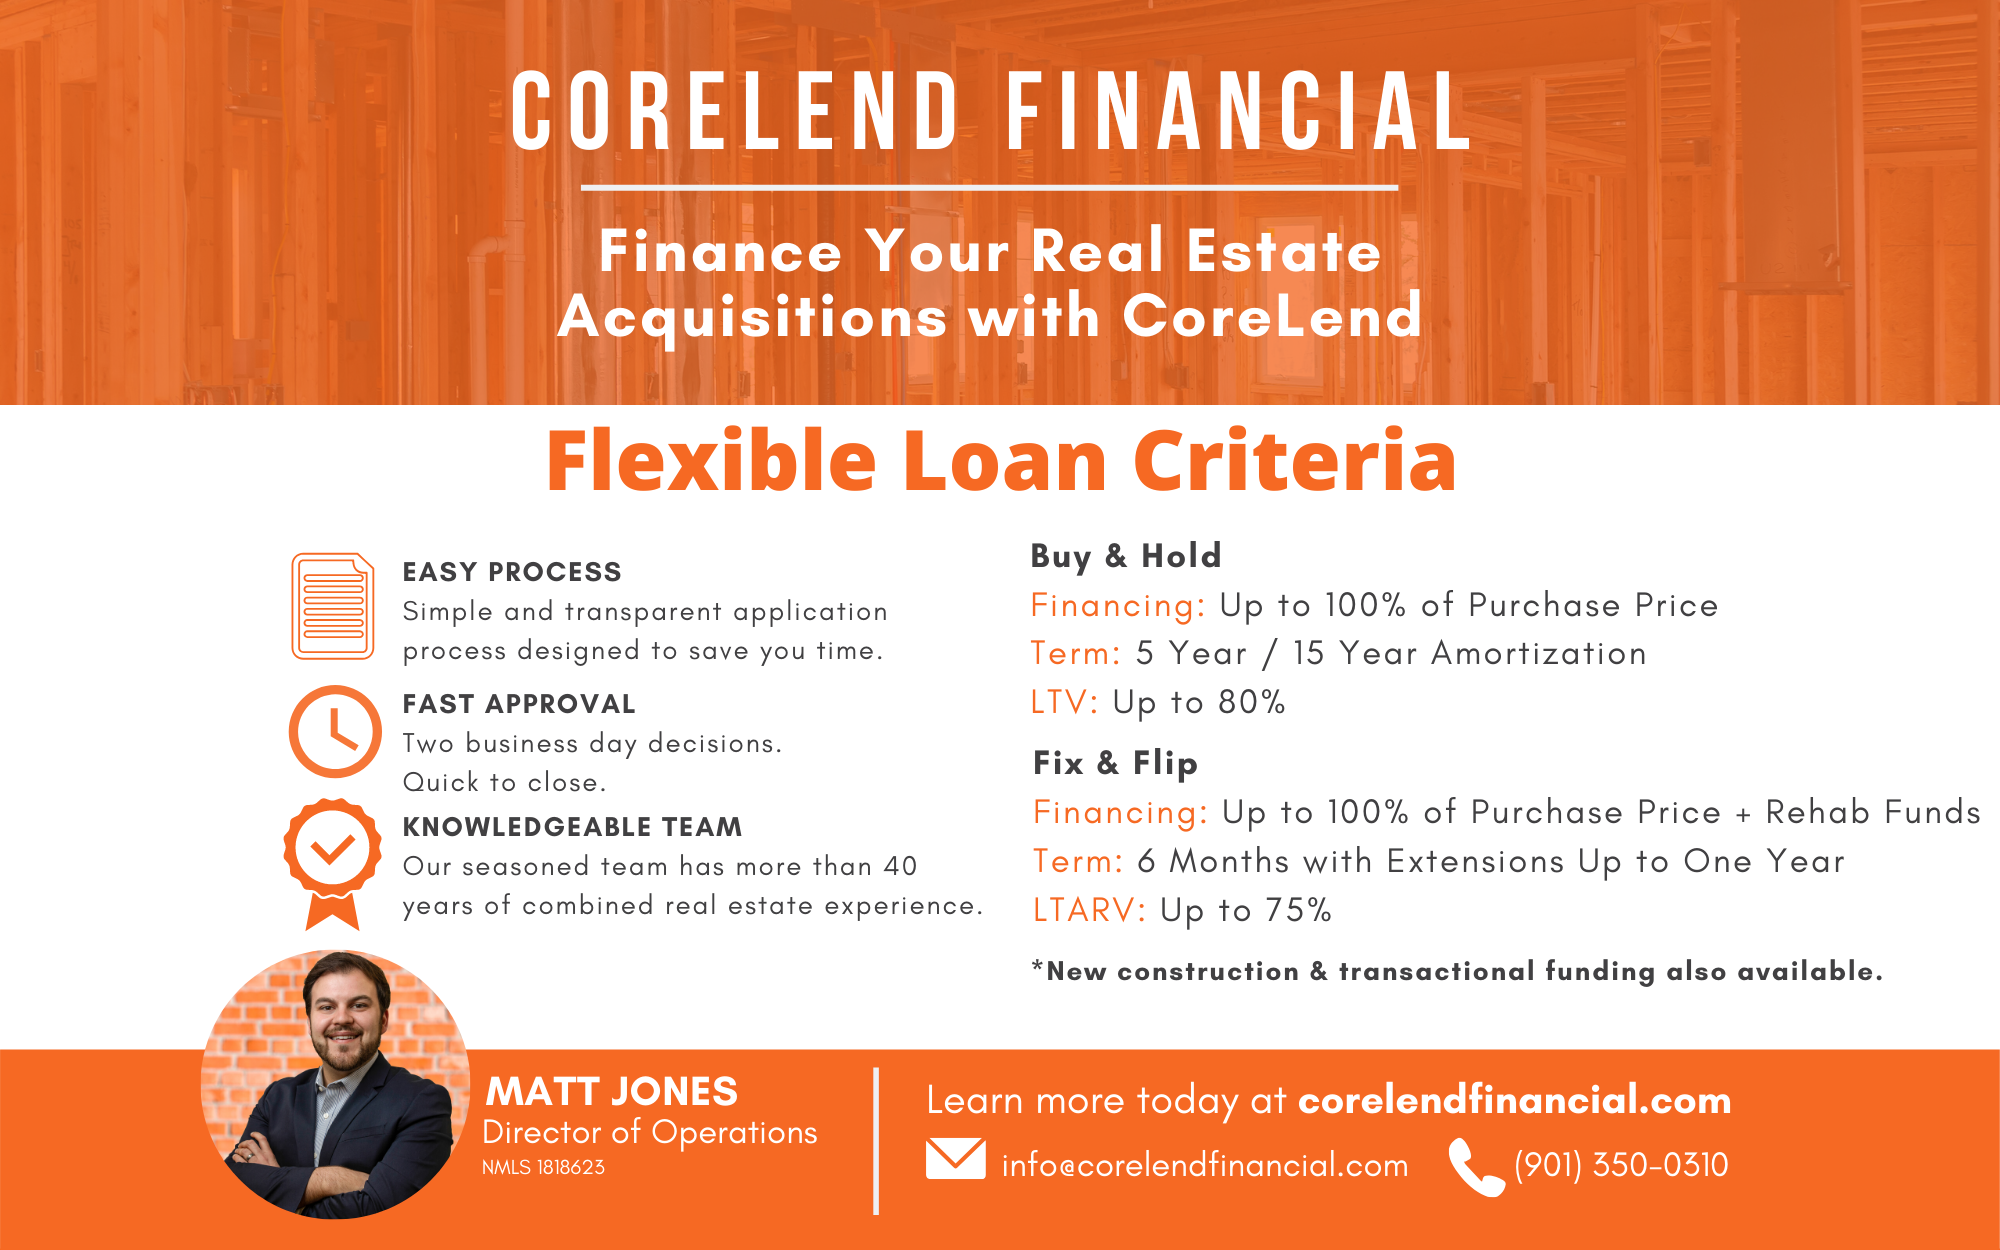 Corelend Financial